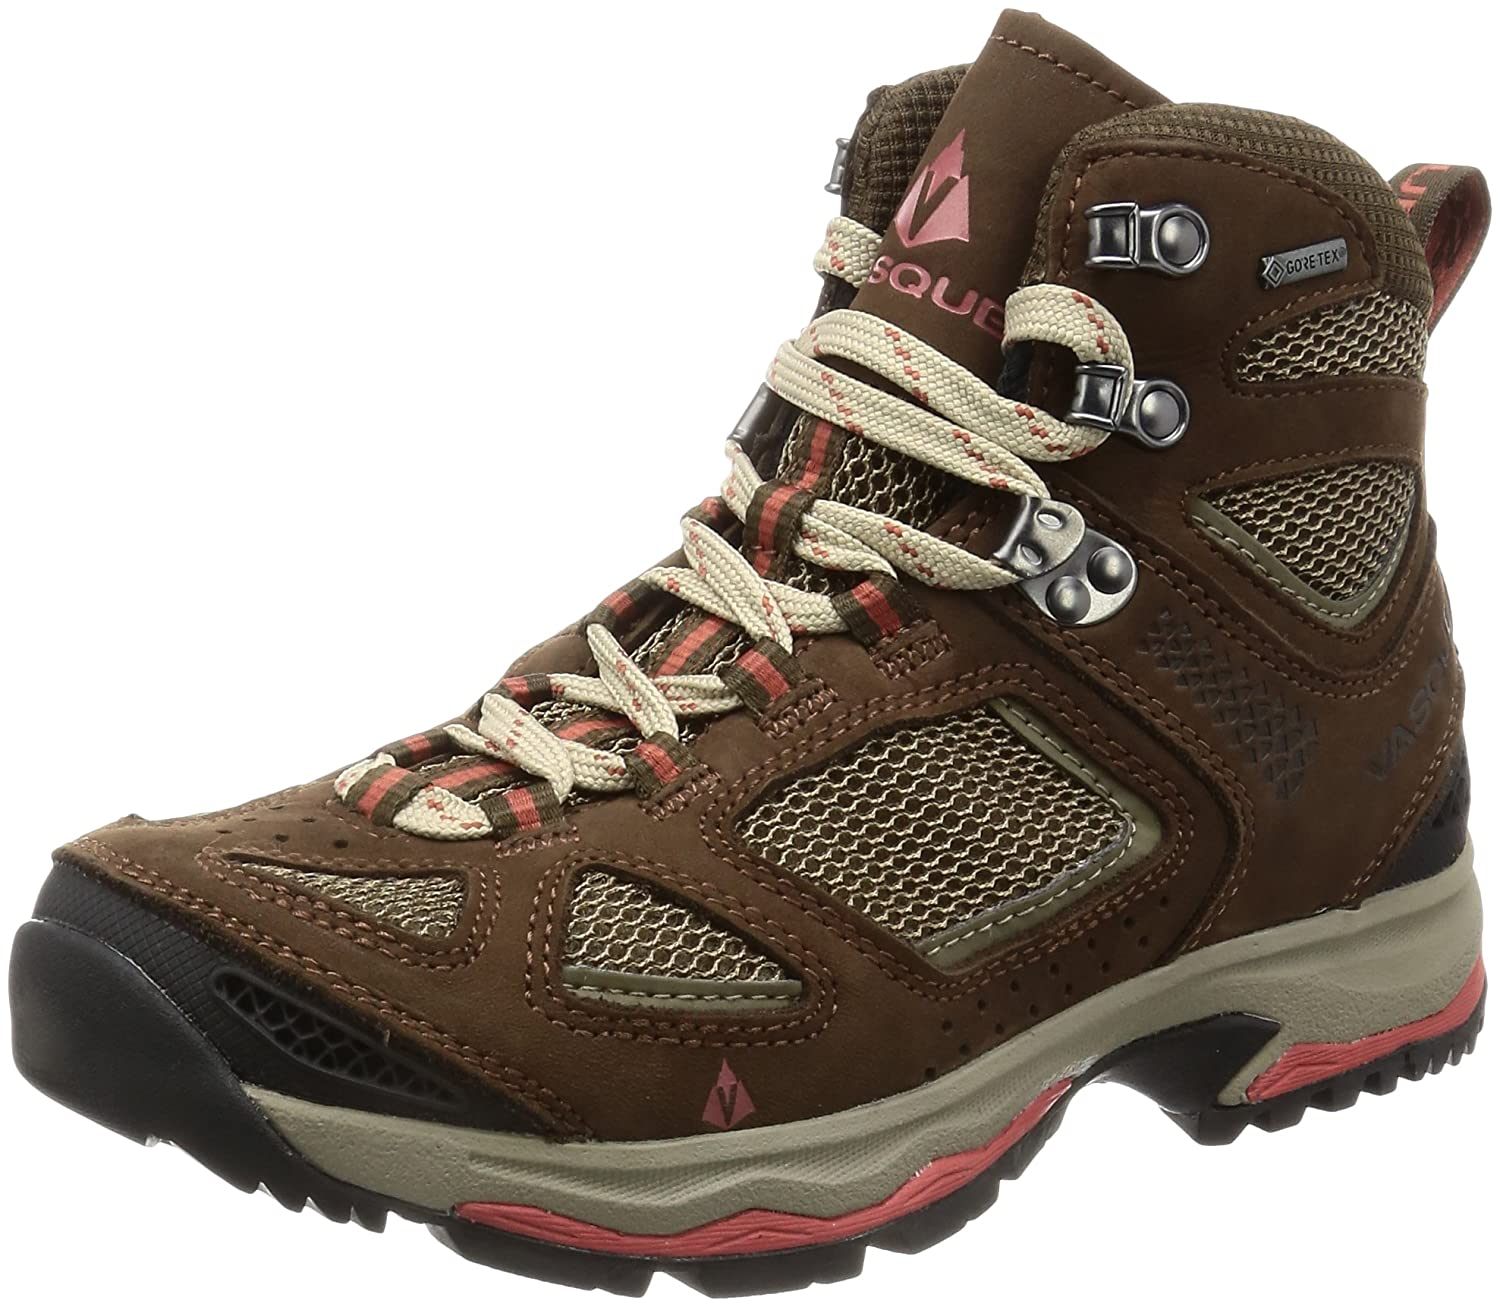 Vasque Women's Breeze III GTX Waterproof Hiking Boot B01F5K11QQ 10 C/D US|Slate Brown / Tandori Spice